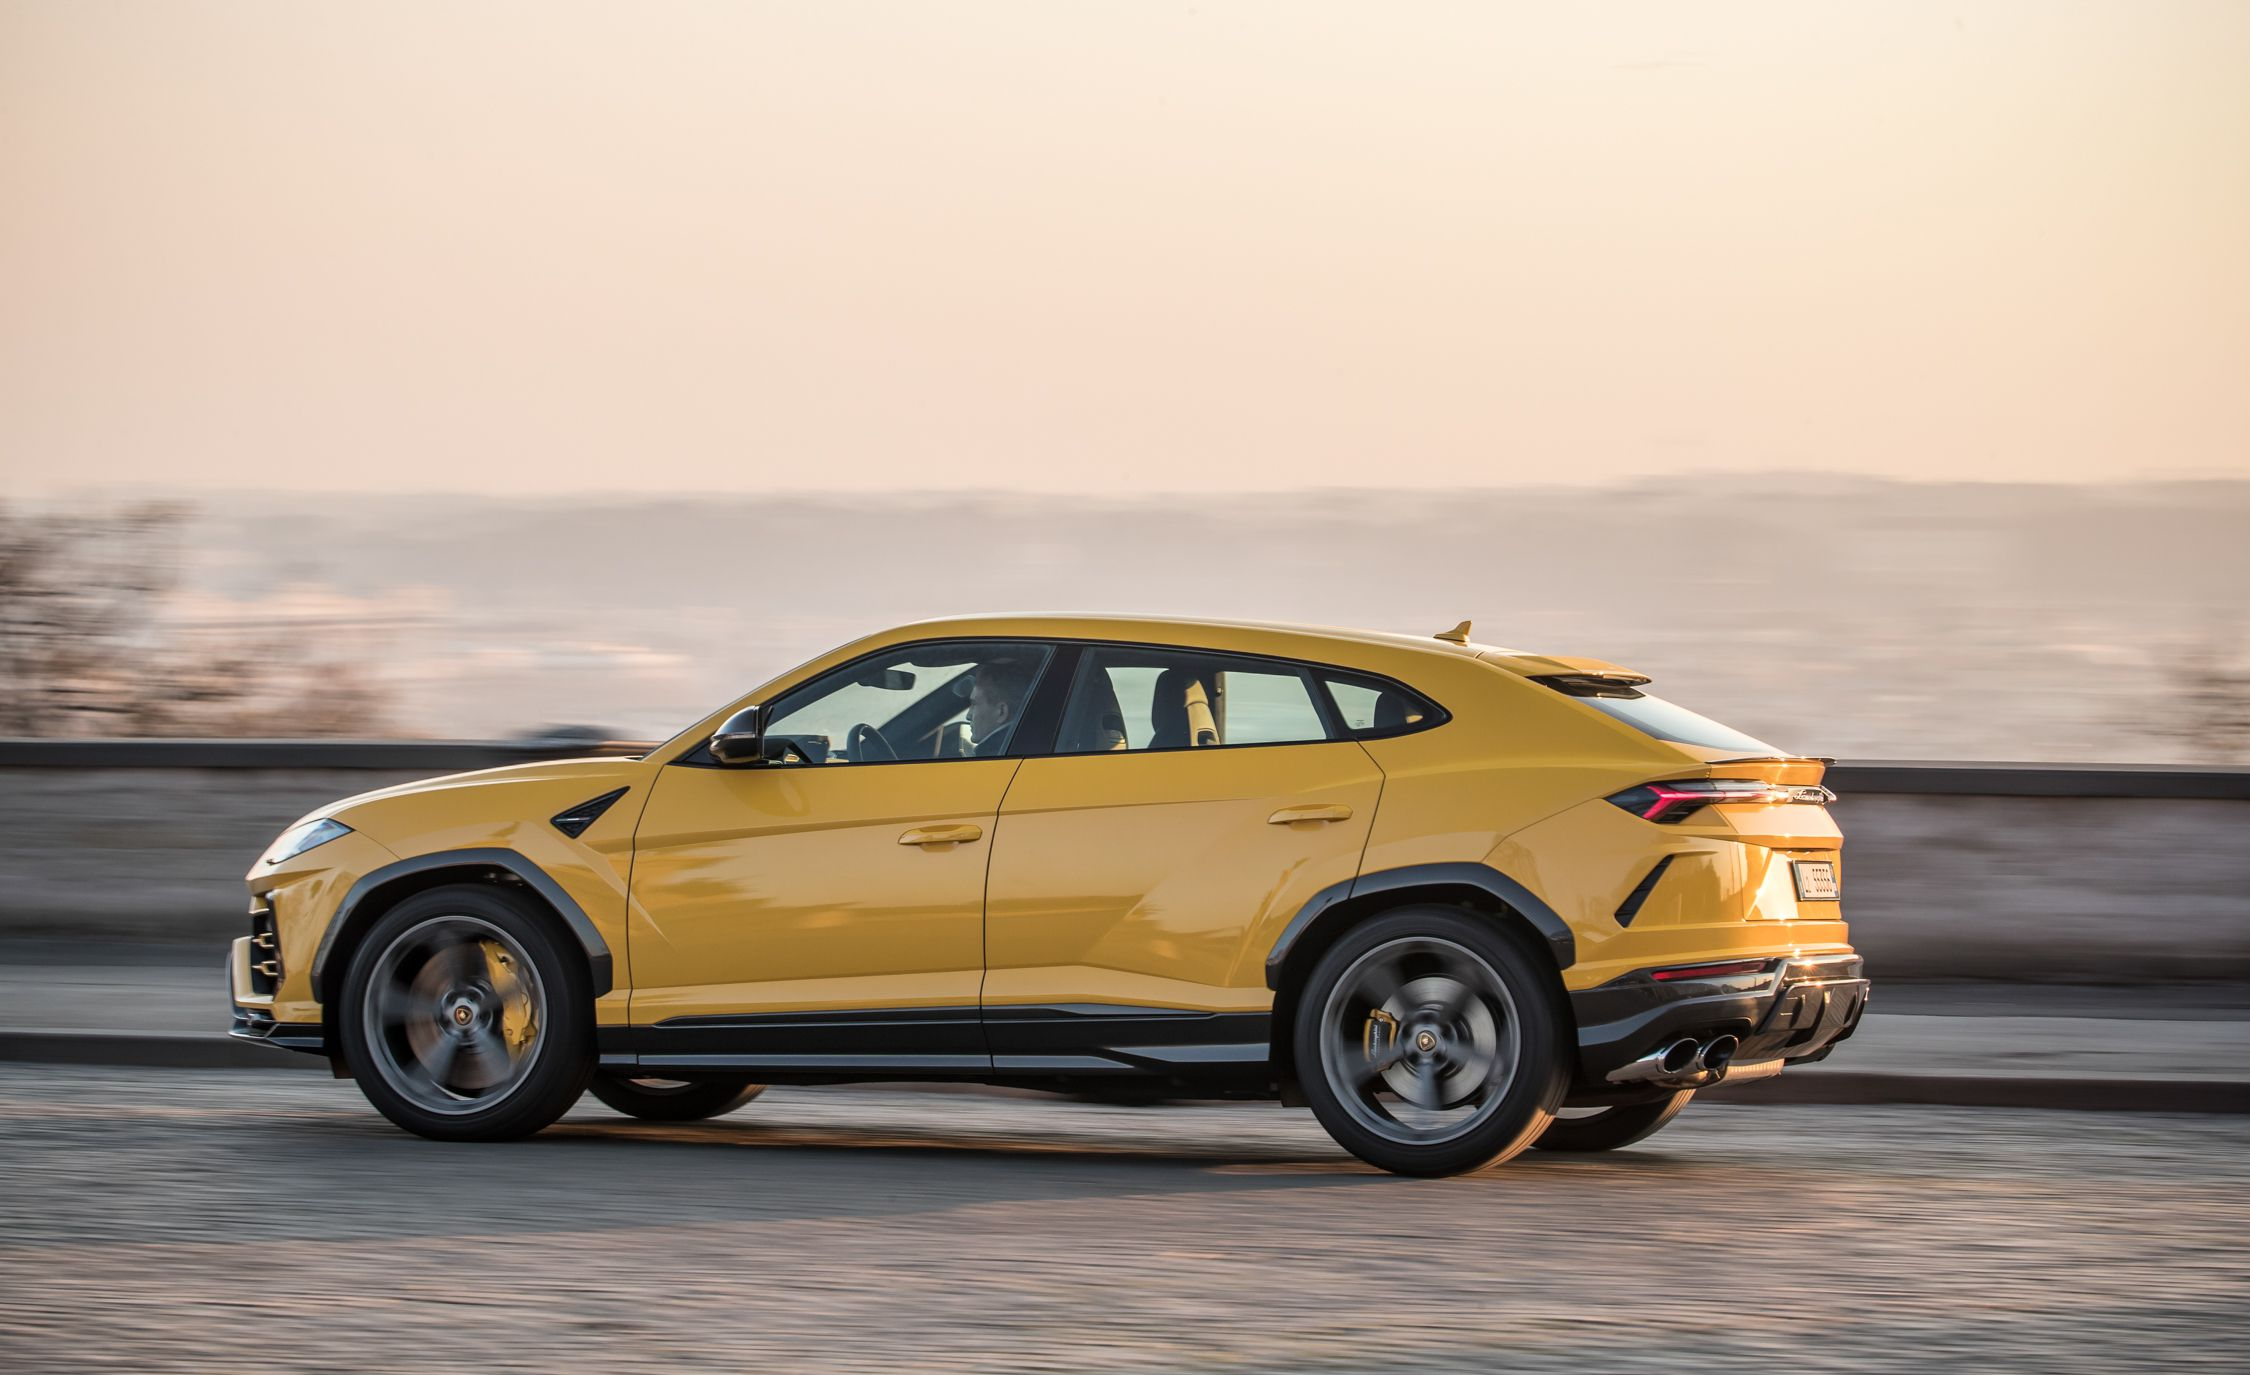 2019 Lamborghini Urus Side Wallpaper (11)